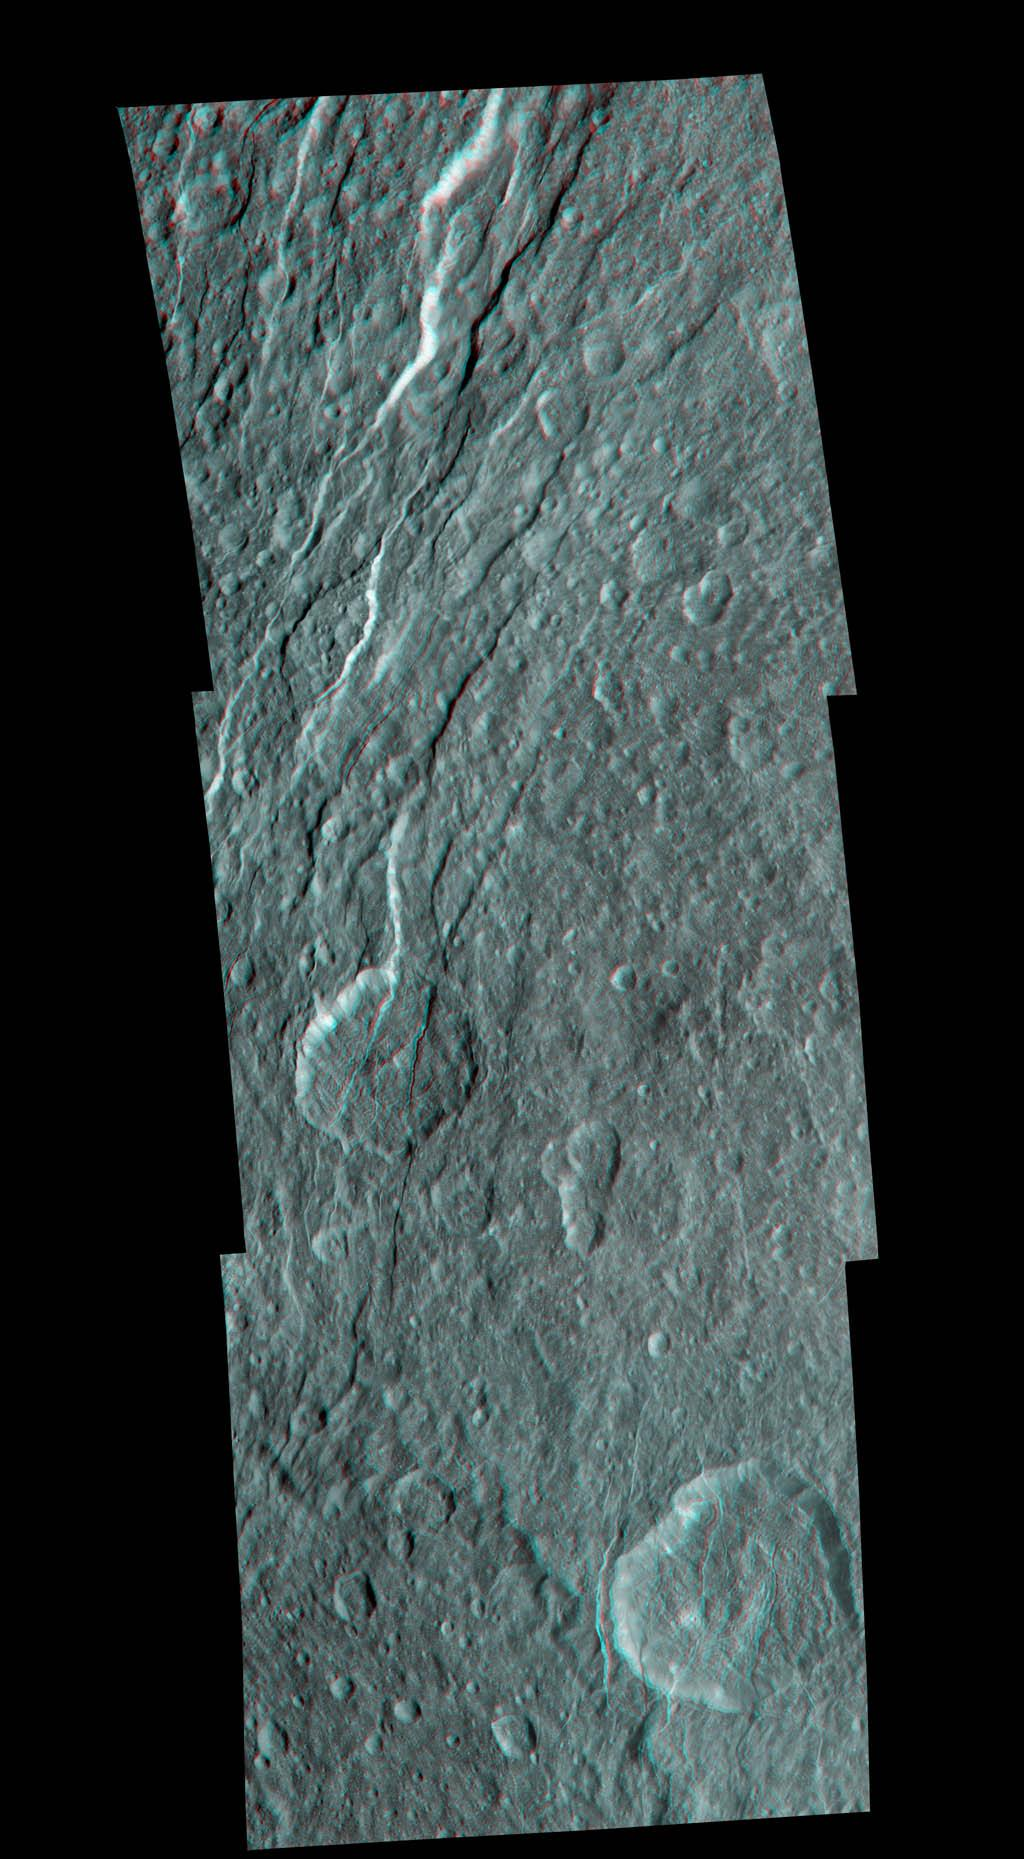 Wispy fractures cut through cratered terrain on Saturn's moon Rhea in this high resolution, 3-D image from NASA's Cassini spacecraft. The image shows a level of detail not seen previously.